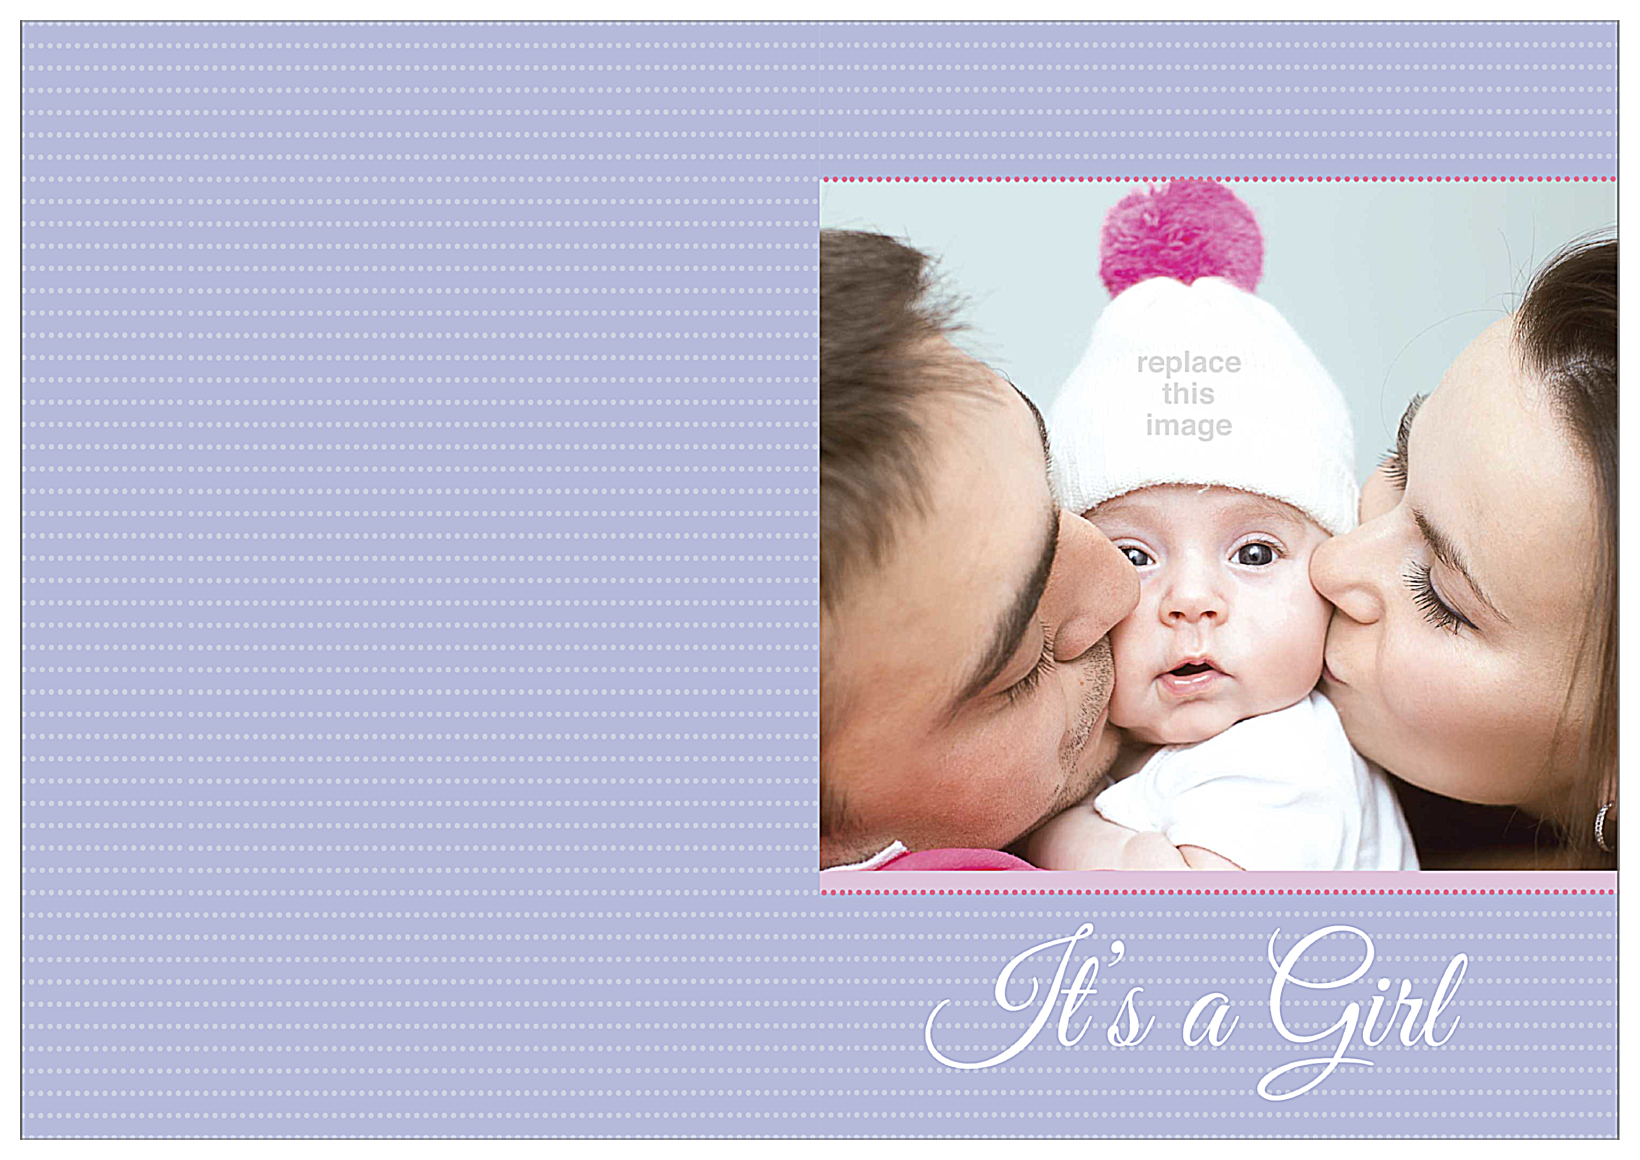 Baby Kisses front - Greeting Cards Maker